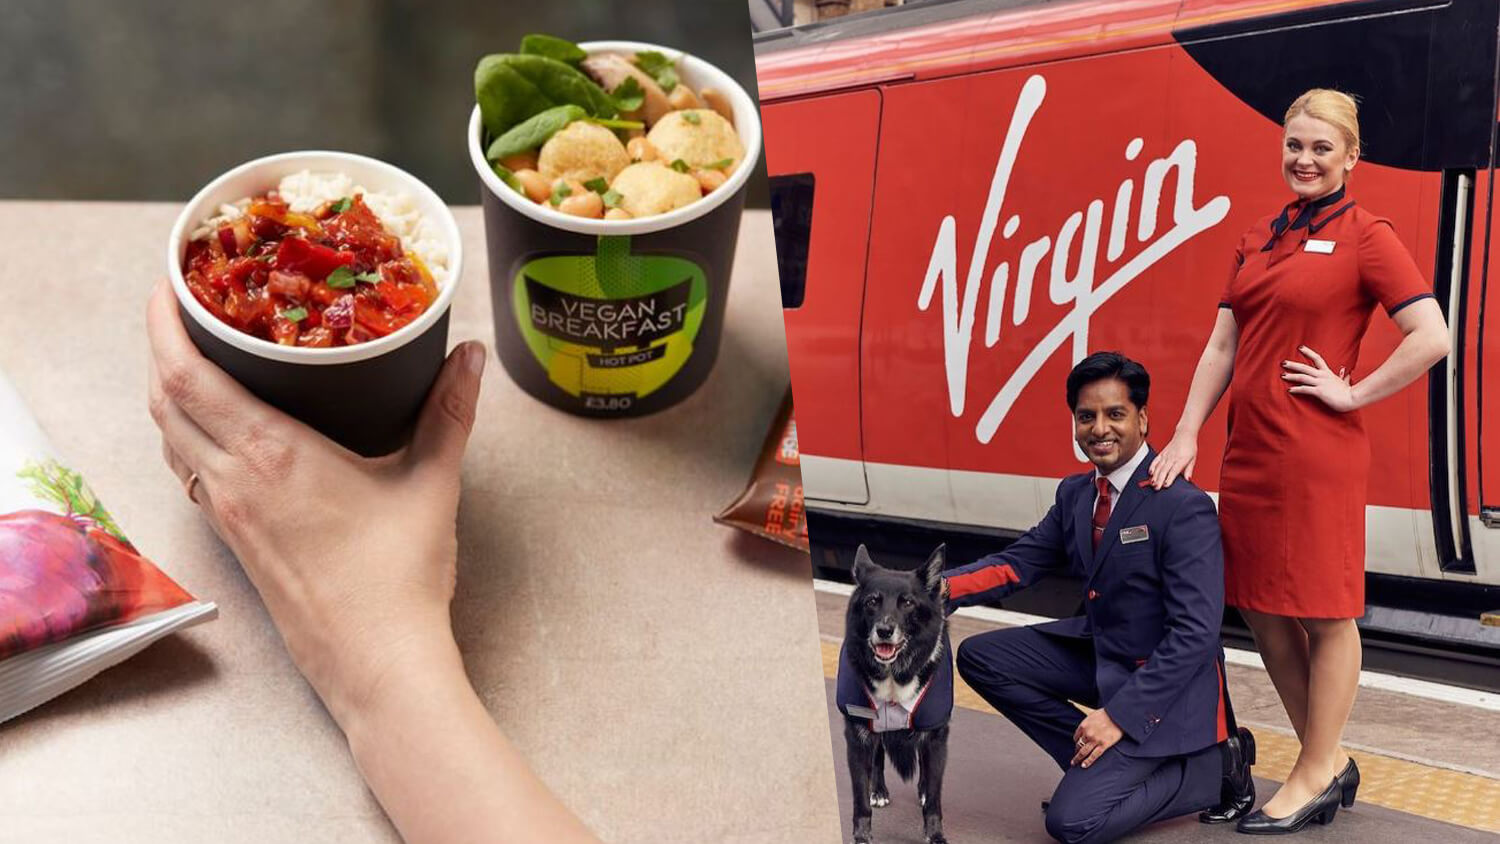 Virgin Trains Becomes UK's First Train Operator to Launch Vegan Menu Including Breakfast Pots, Pasta Salad, and Spicy Bombay Potatoes